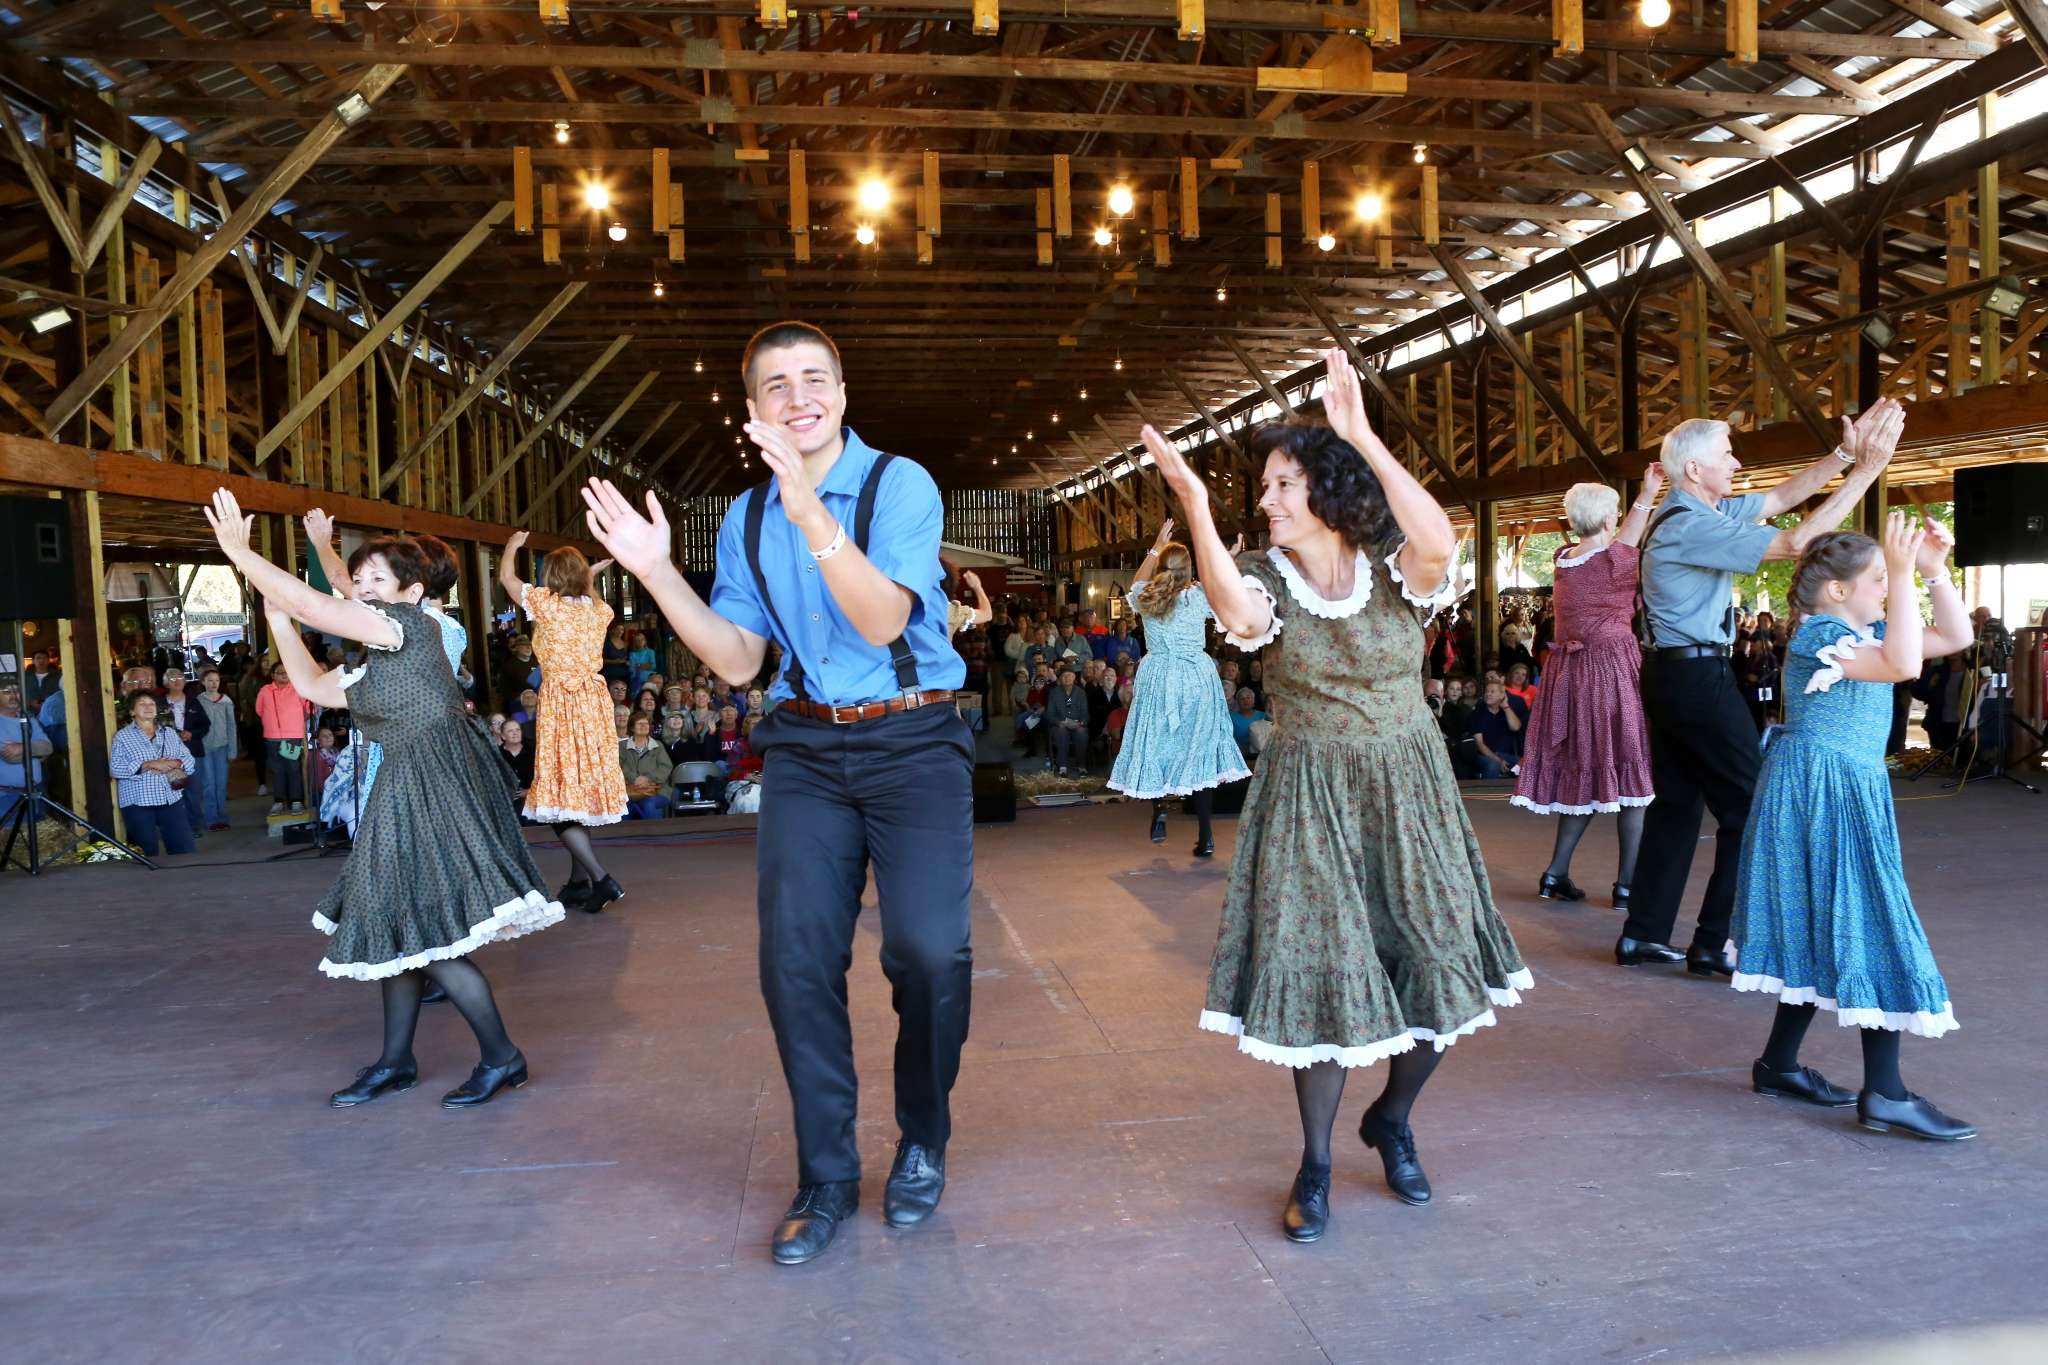 Cloggers at John C. Campbell Folk School Fall Festival